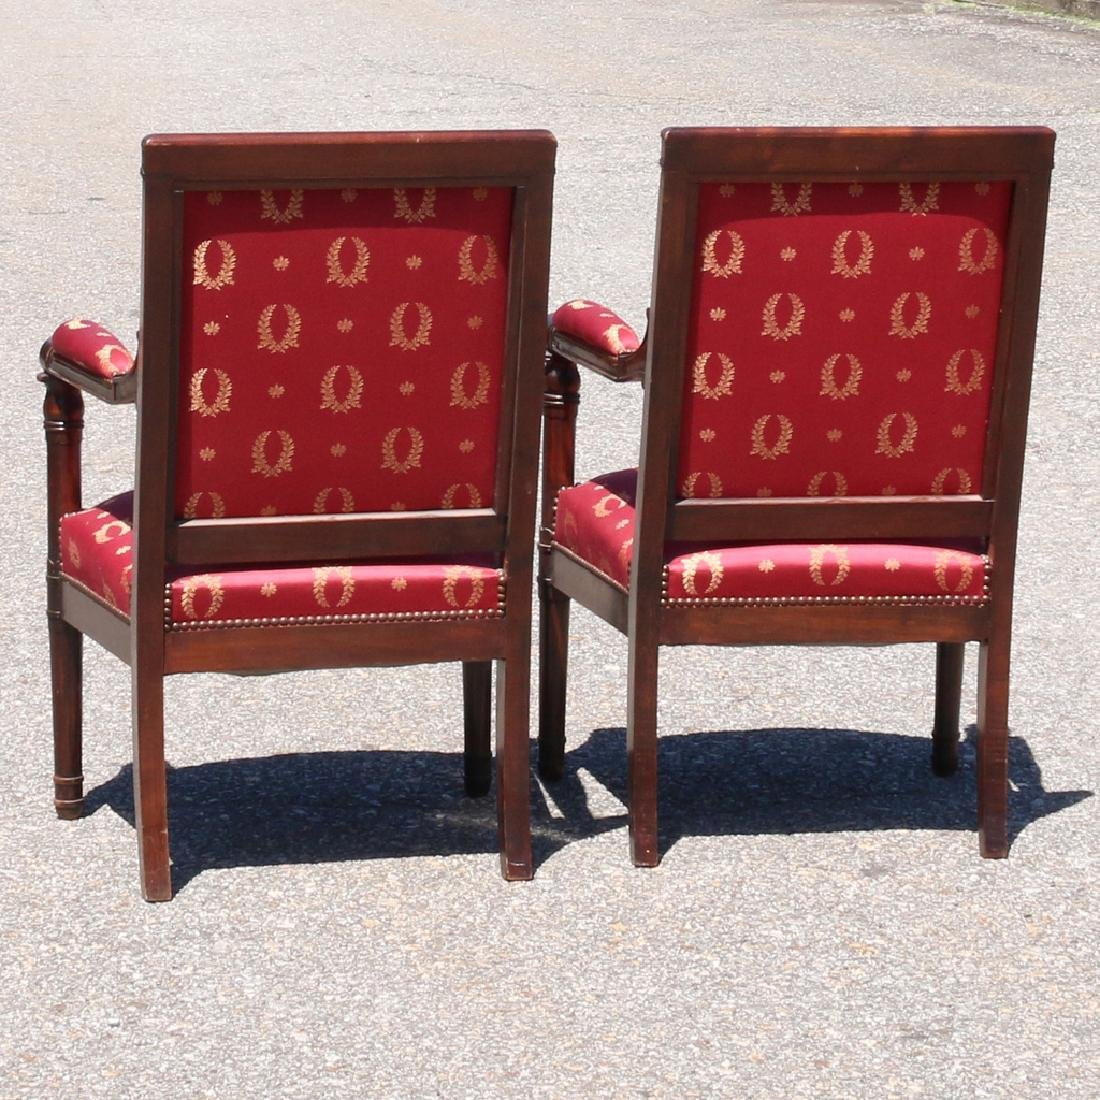 PAIR ENGLISH REGENCY-STYLE OPEN ARMCHAIRS - 3